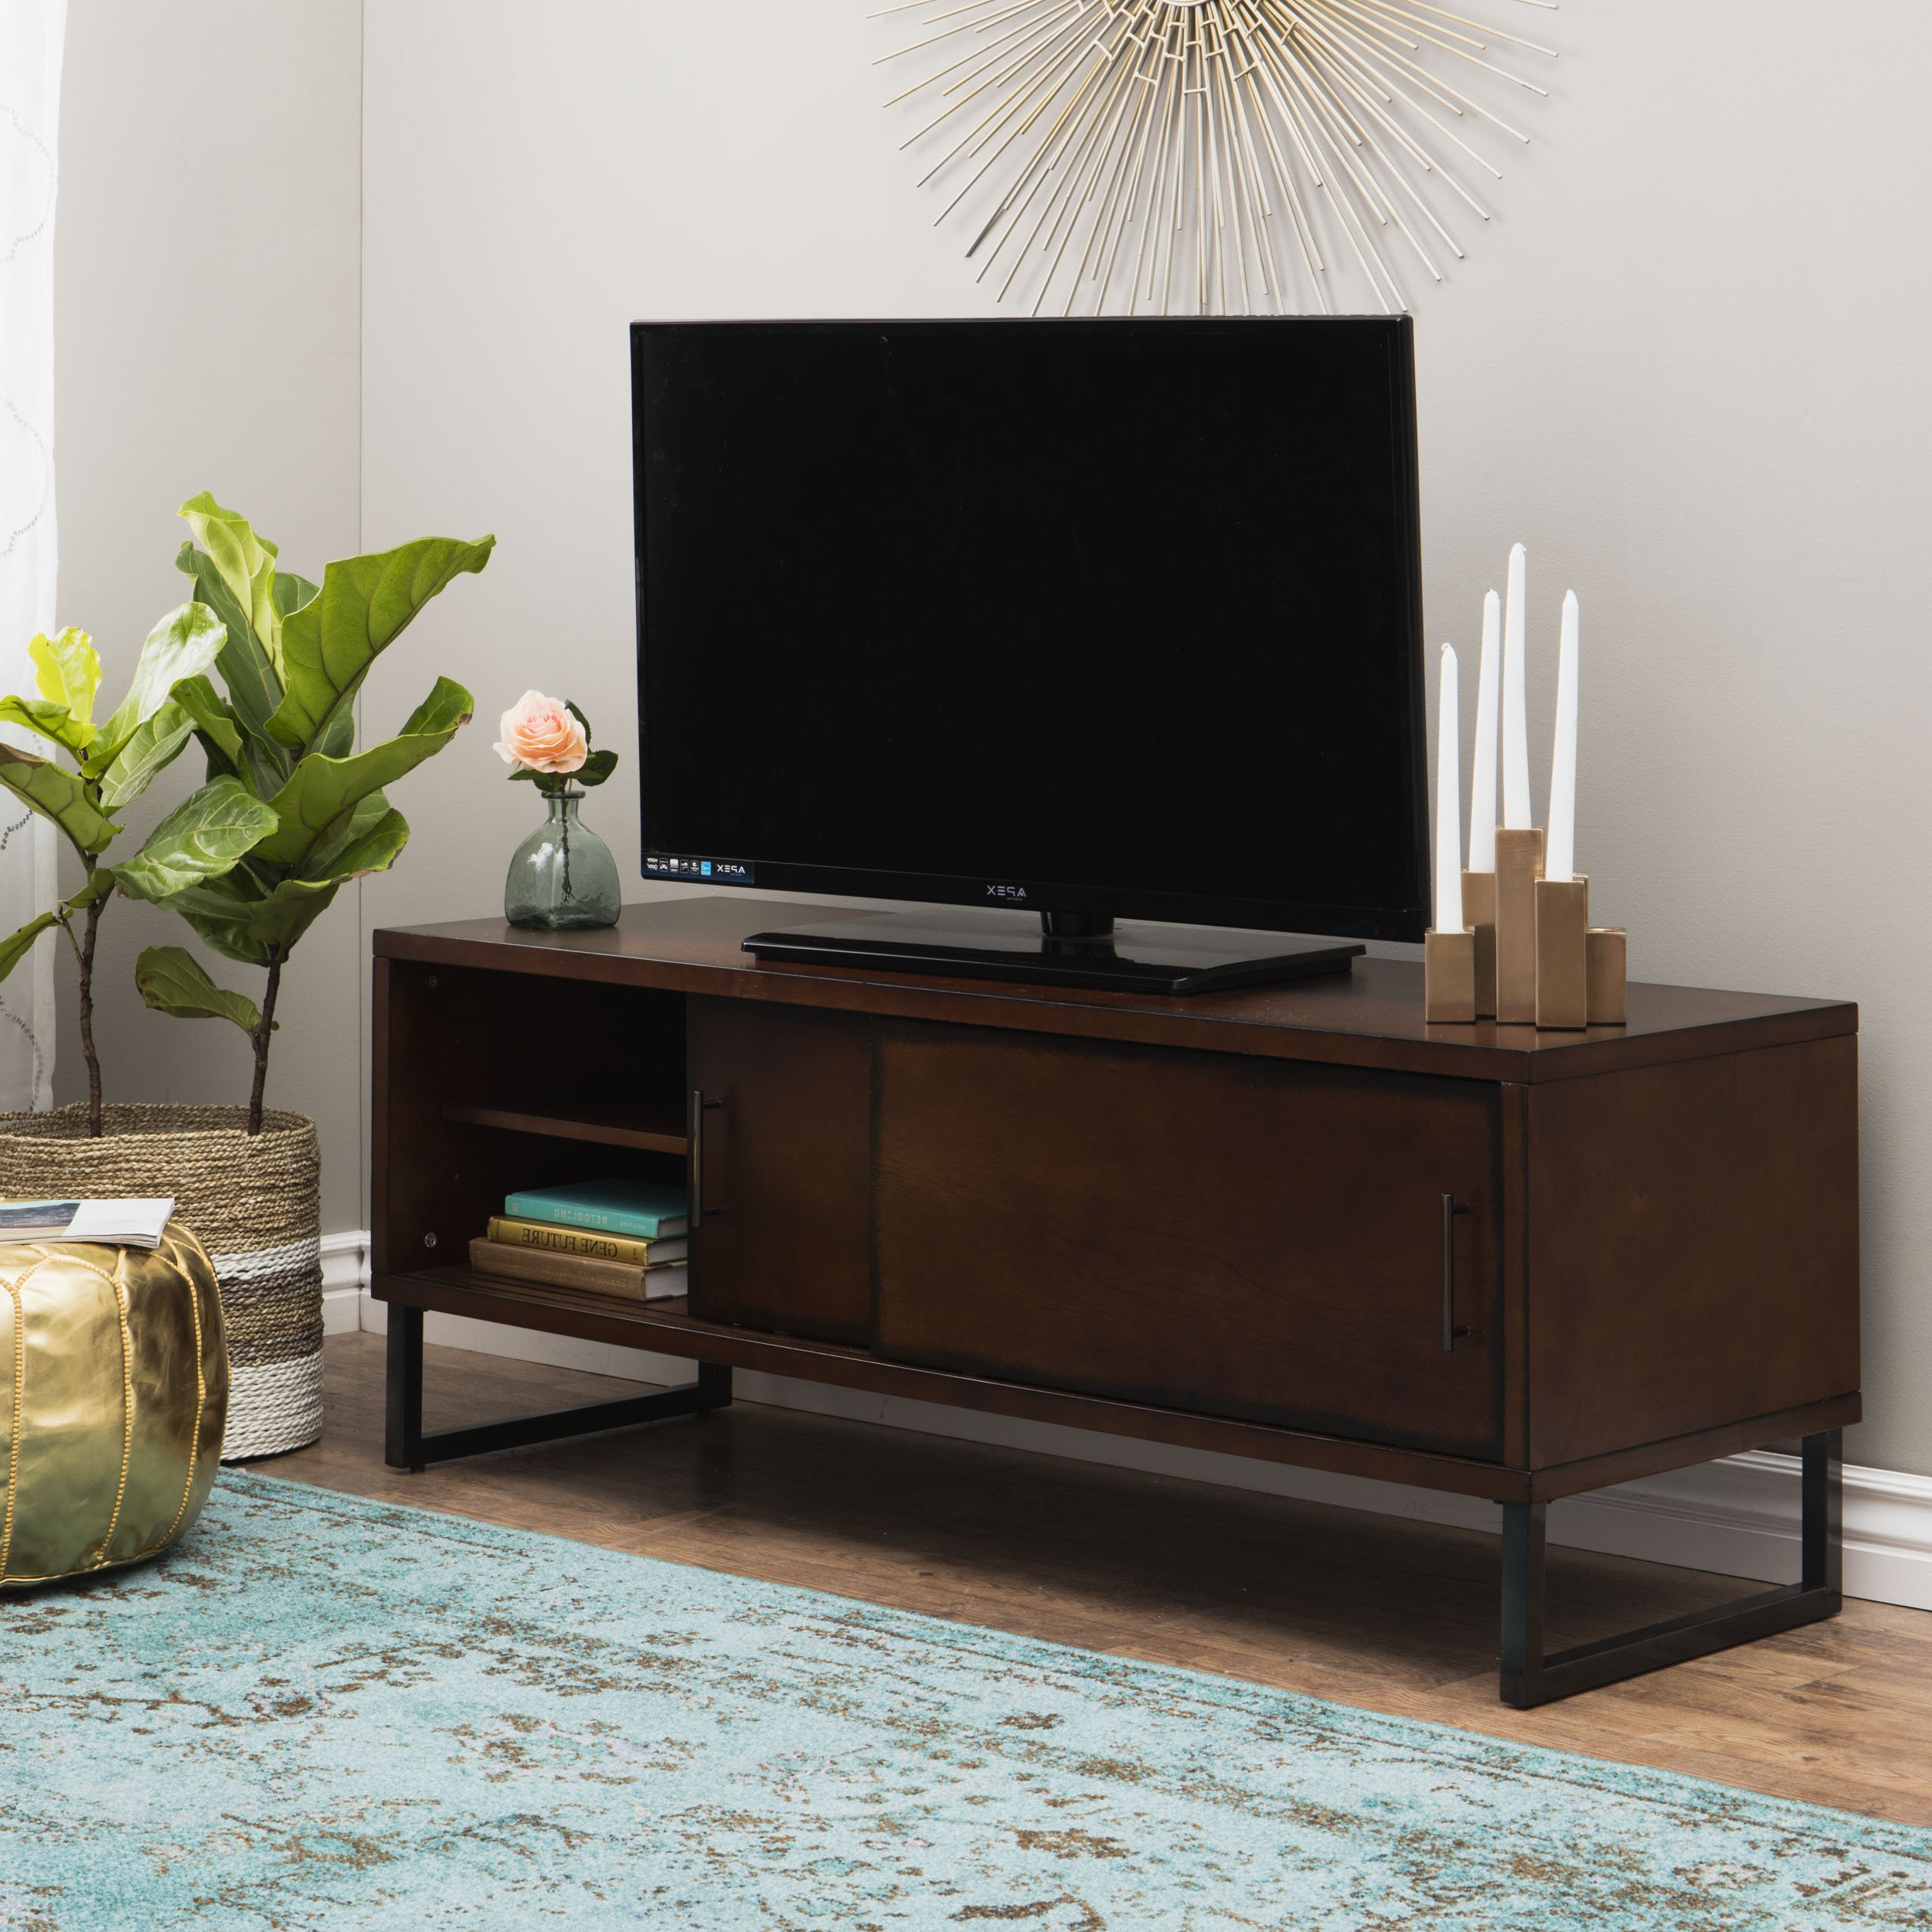 Shop Carbon Loft 54 Inch Breckenridge Walnut Entertainment Center Throughout Canyon 54 Inch Tv Stands (View 14 of 20)